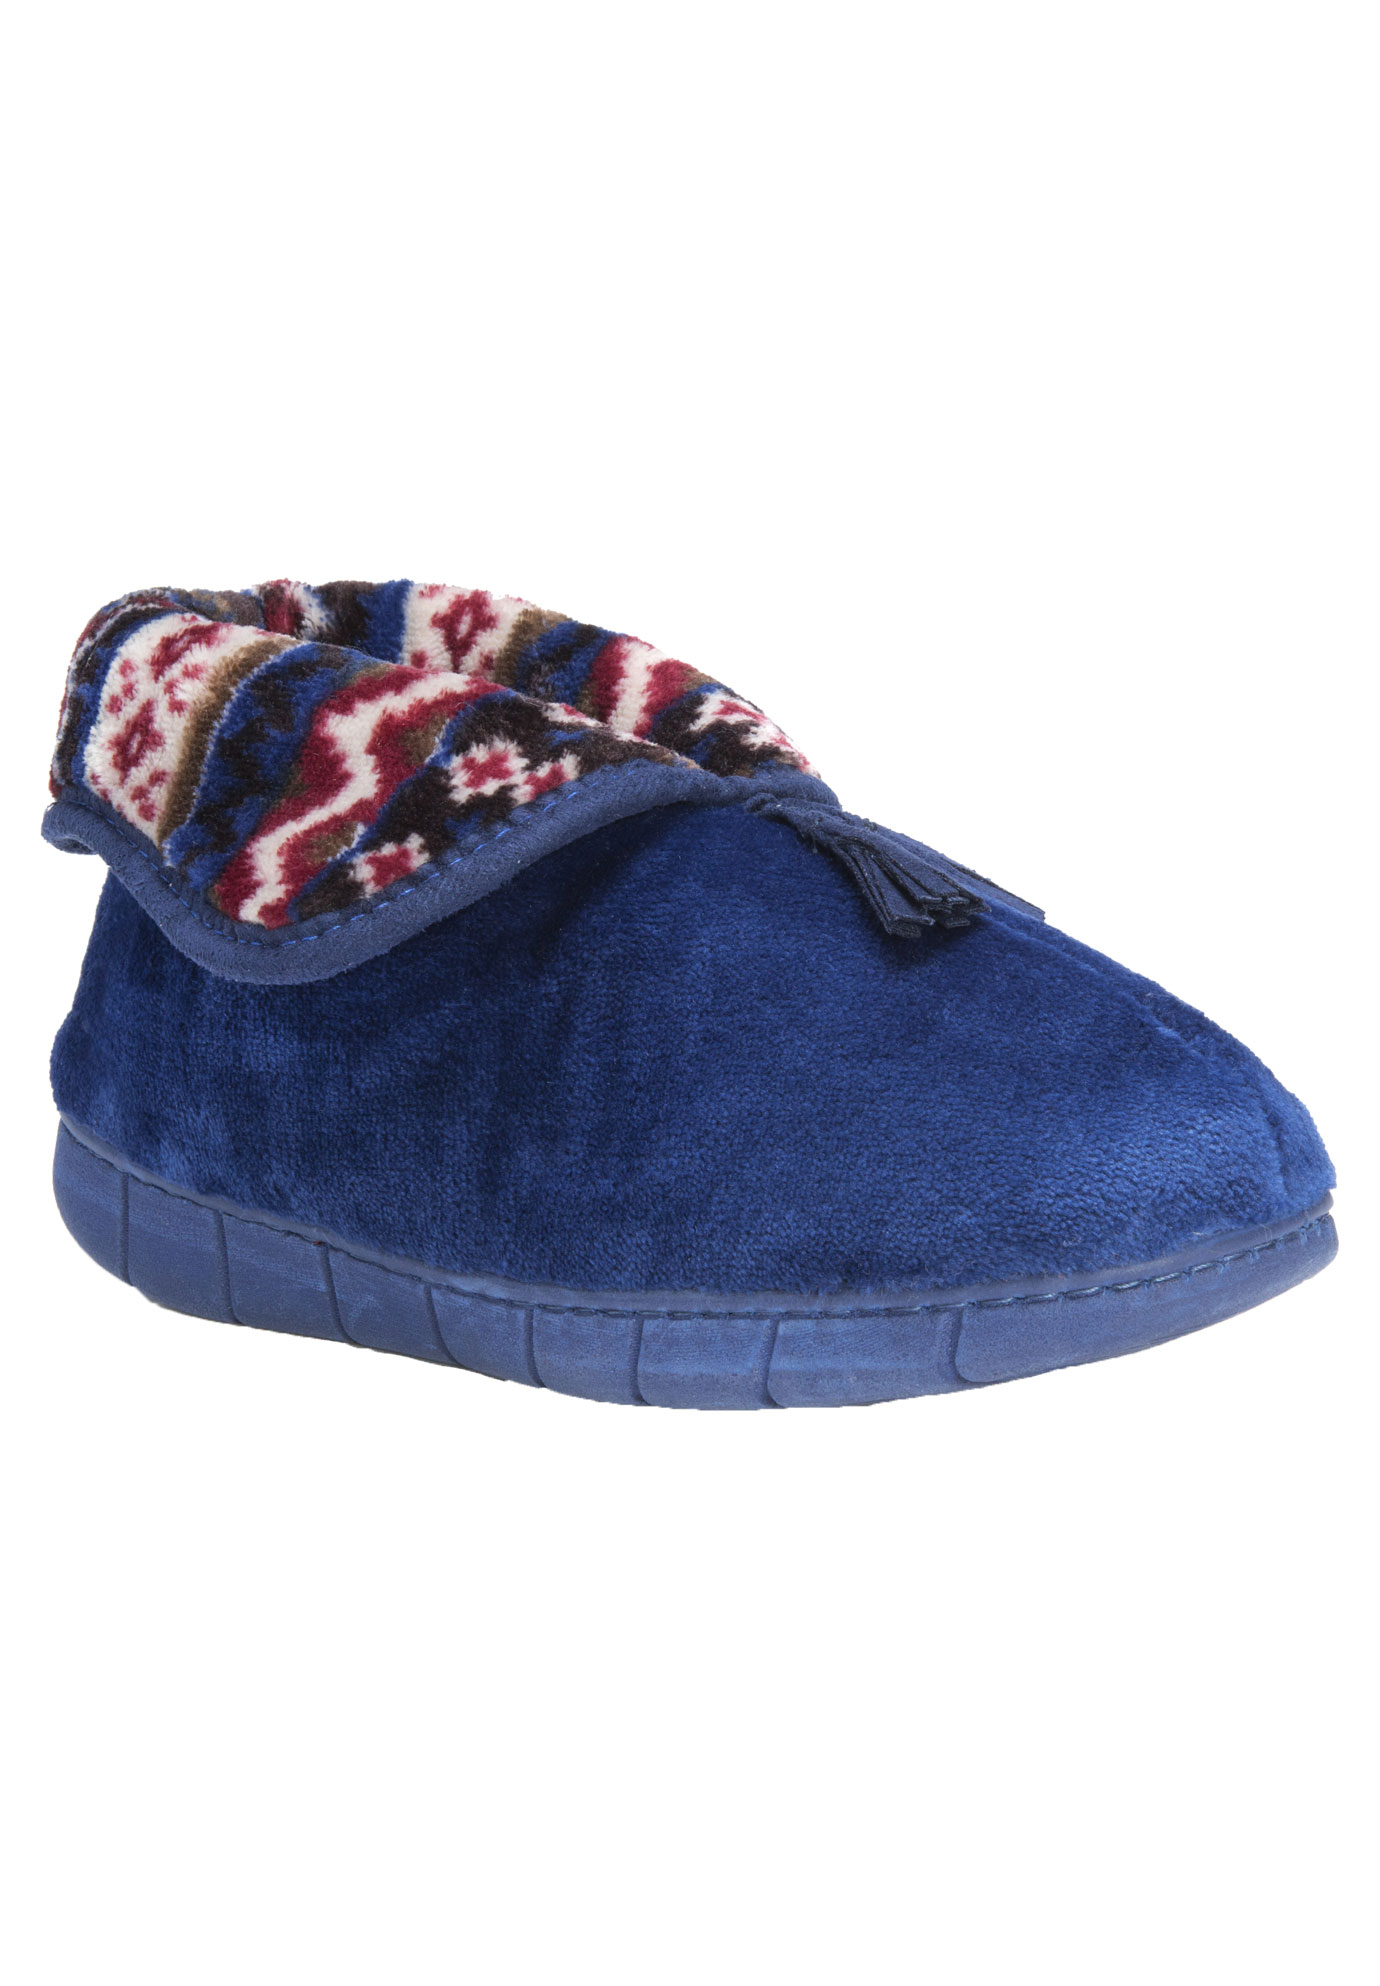 Porchia Slippers by Muk Luks®,